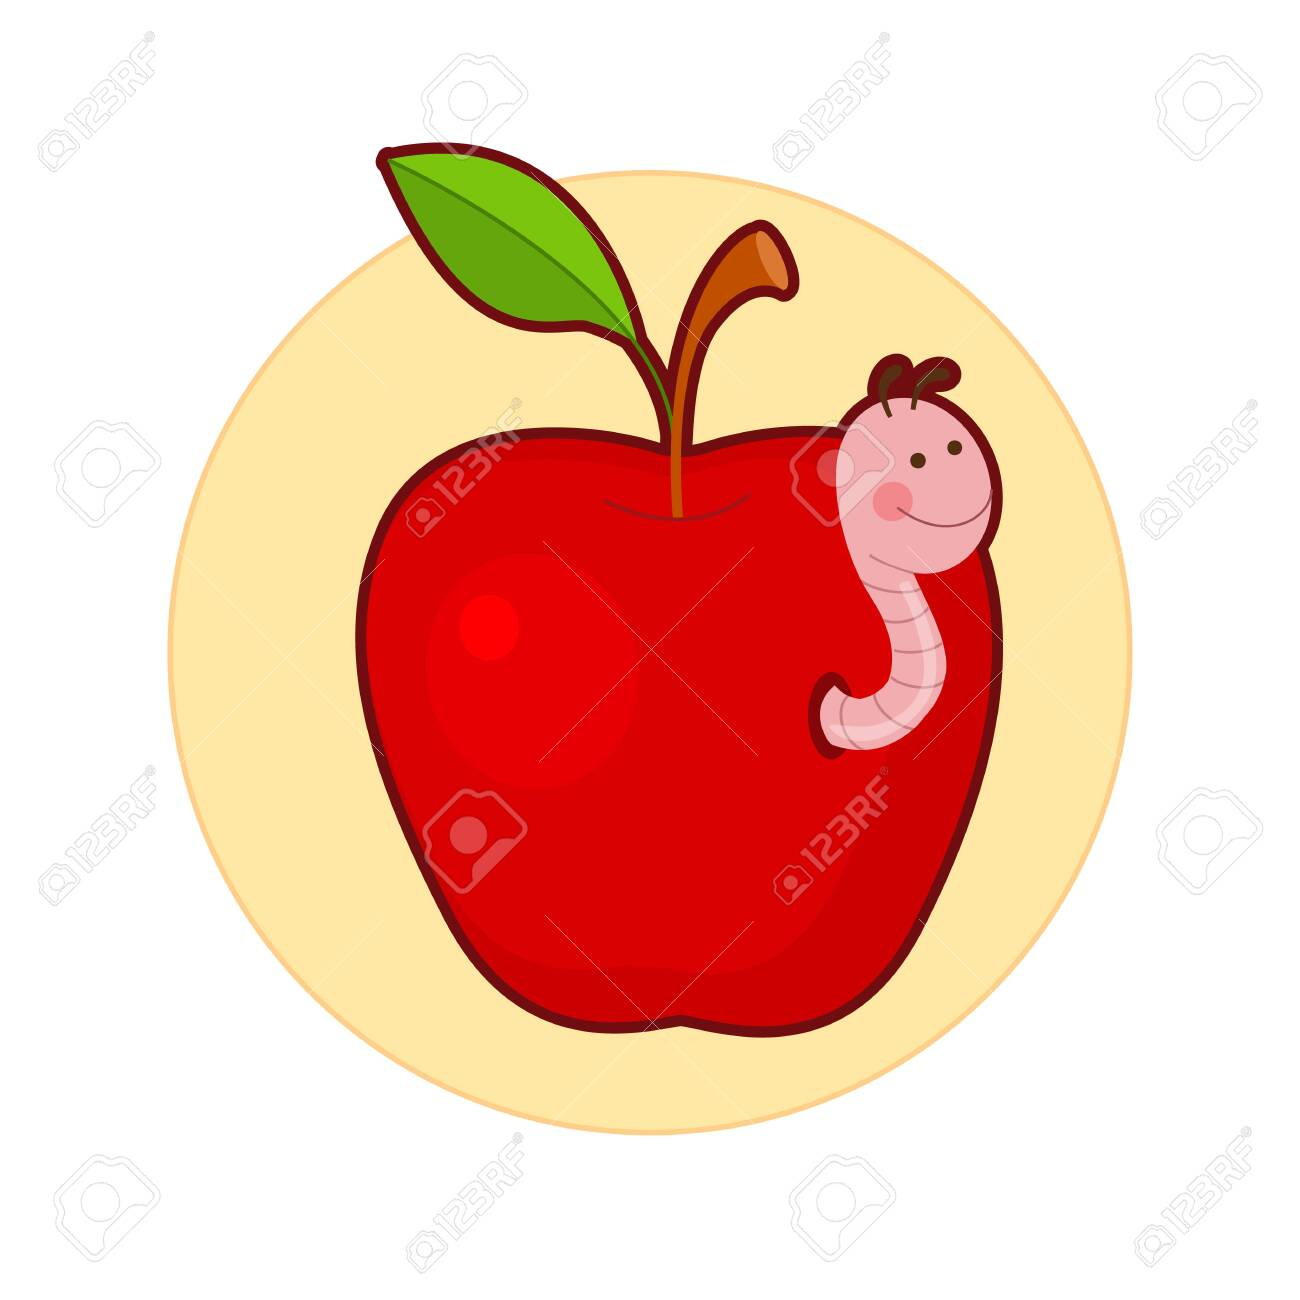 Vector illustration of apple with cute worm in it - 130347077